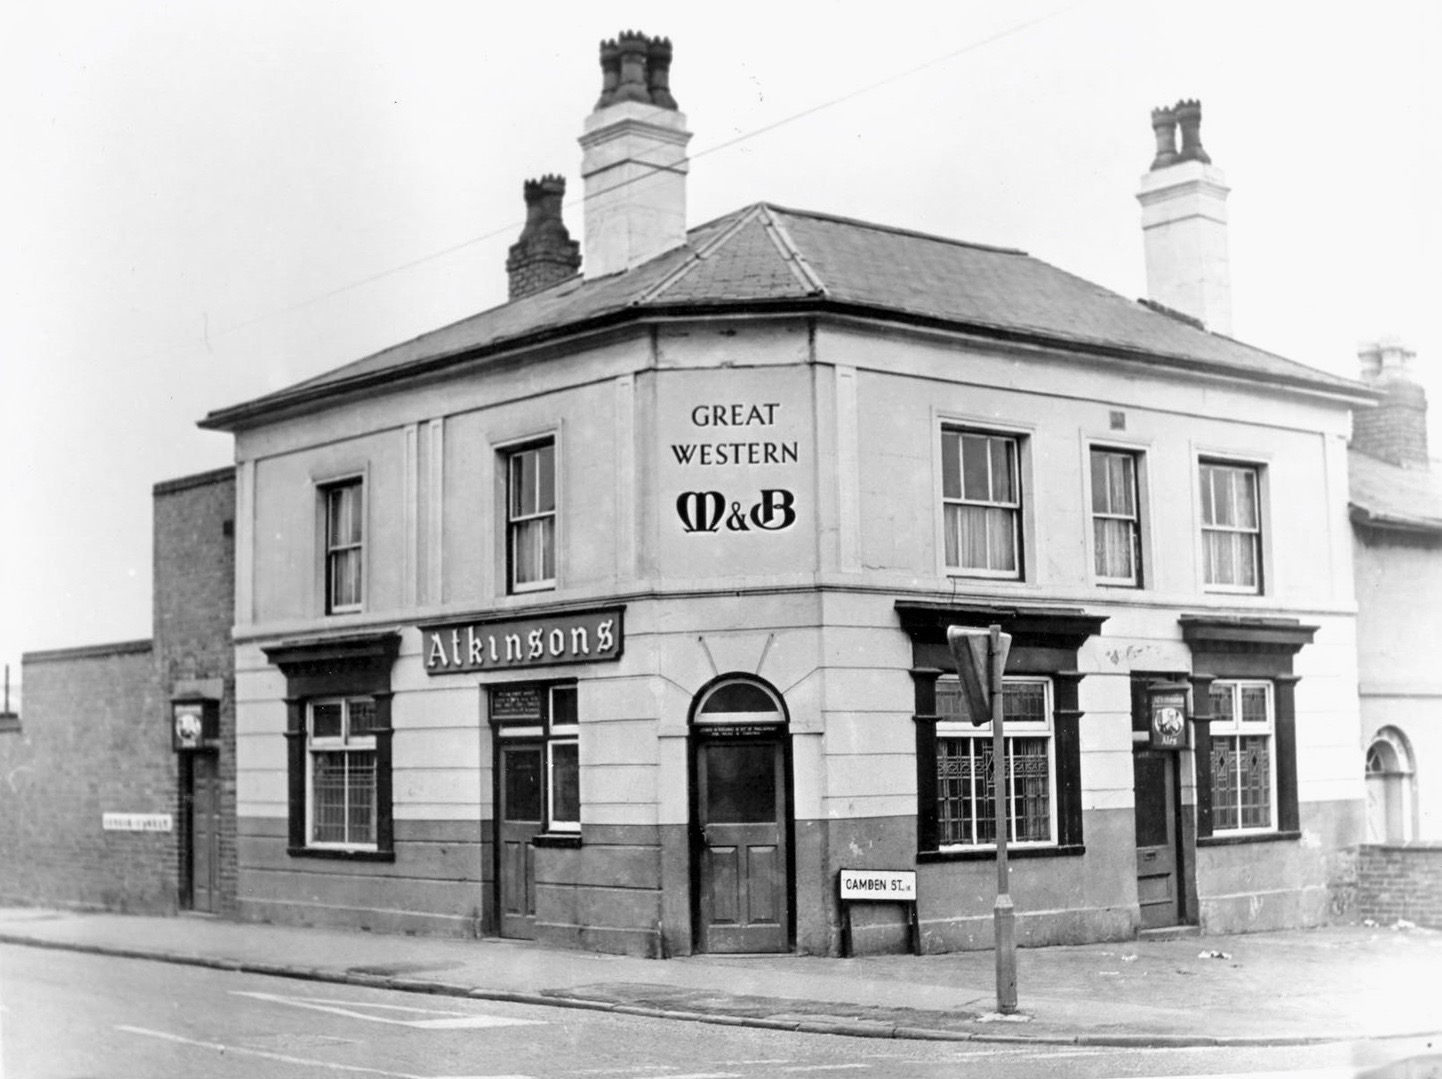 """""""GREAT WESTERN"""" a public house located at the junction of CAMDEN STREET AND GEORGE STREET WEST. Photo 1950s, pub demolished as part of the regeneration of the area 1960/70s"""